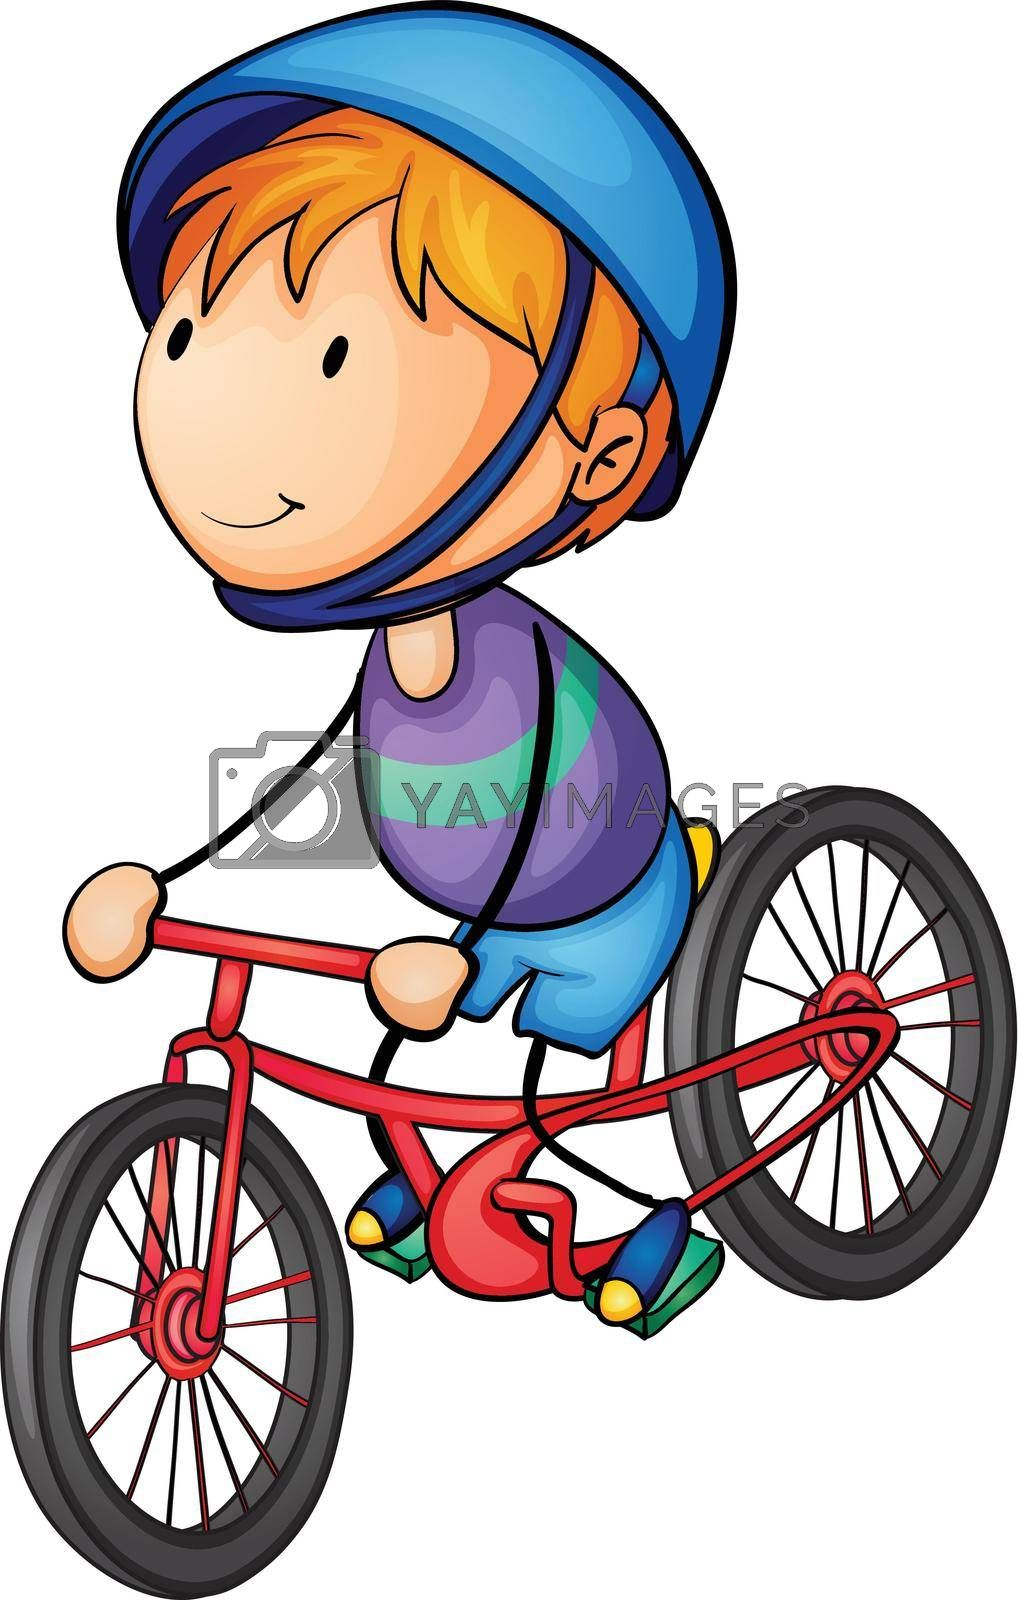 illustration of a boy riding on a bicycle